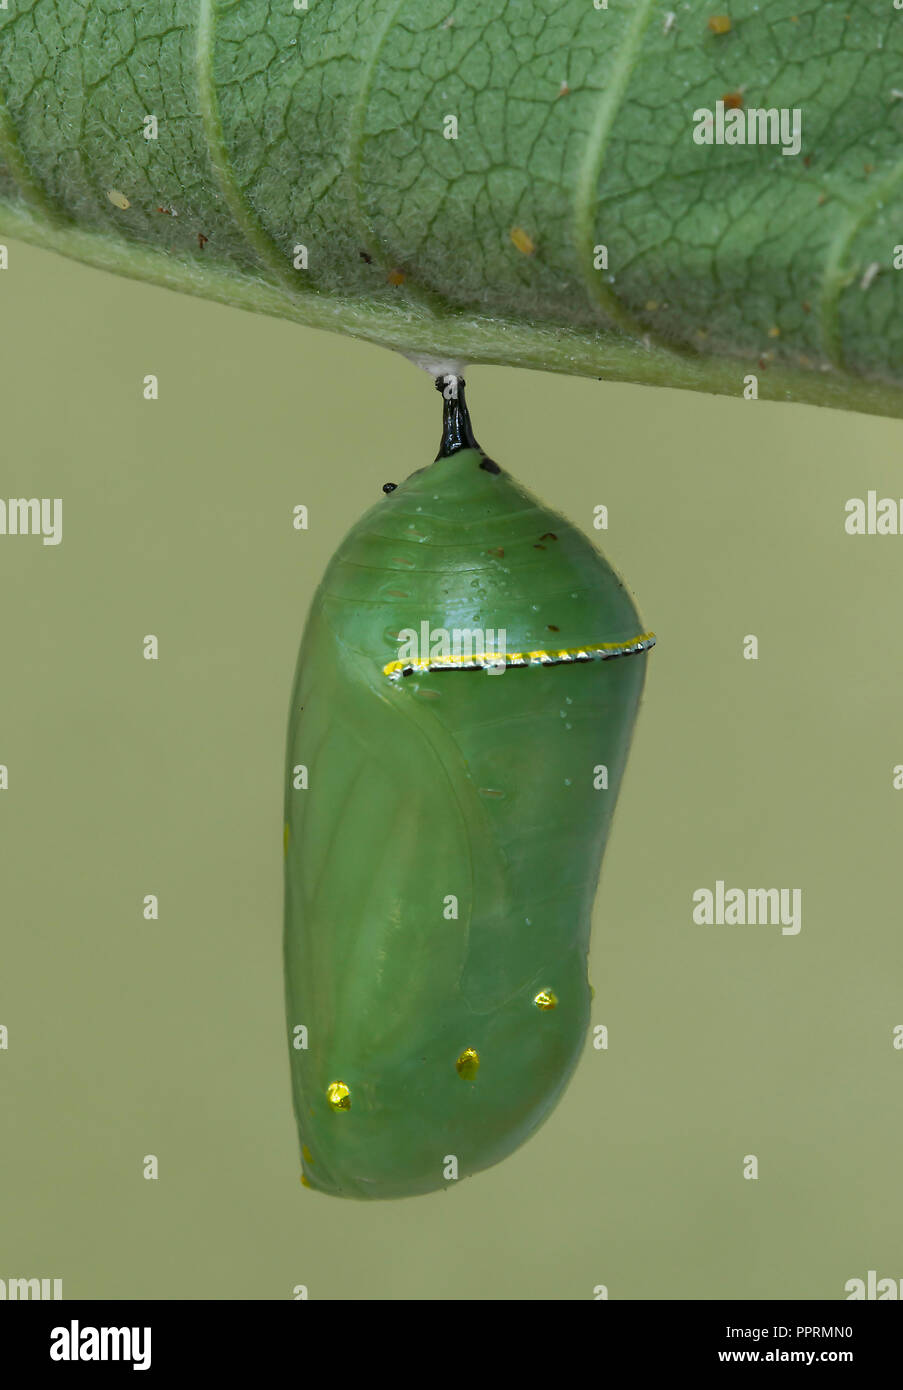 Monarch Butterfly Pupa Danaus plexippus on Common Milkweed leaf (Asclepias syriaca), Eastern NA, by Skip Moody/Dembinsky Photo Assoc - Stock Image